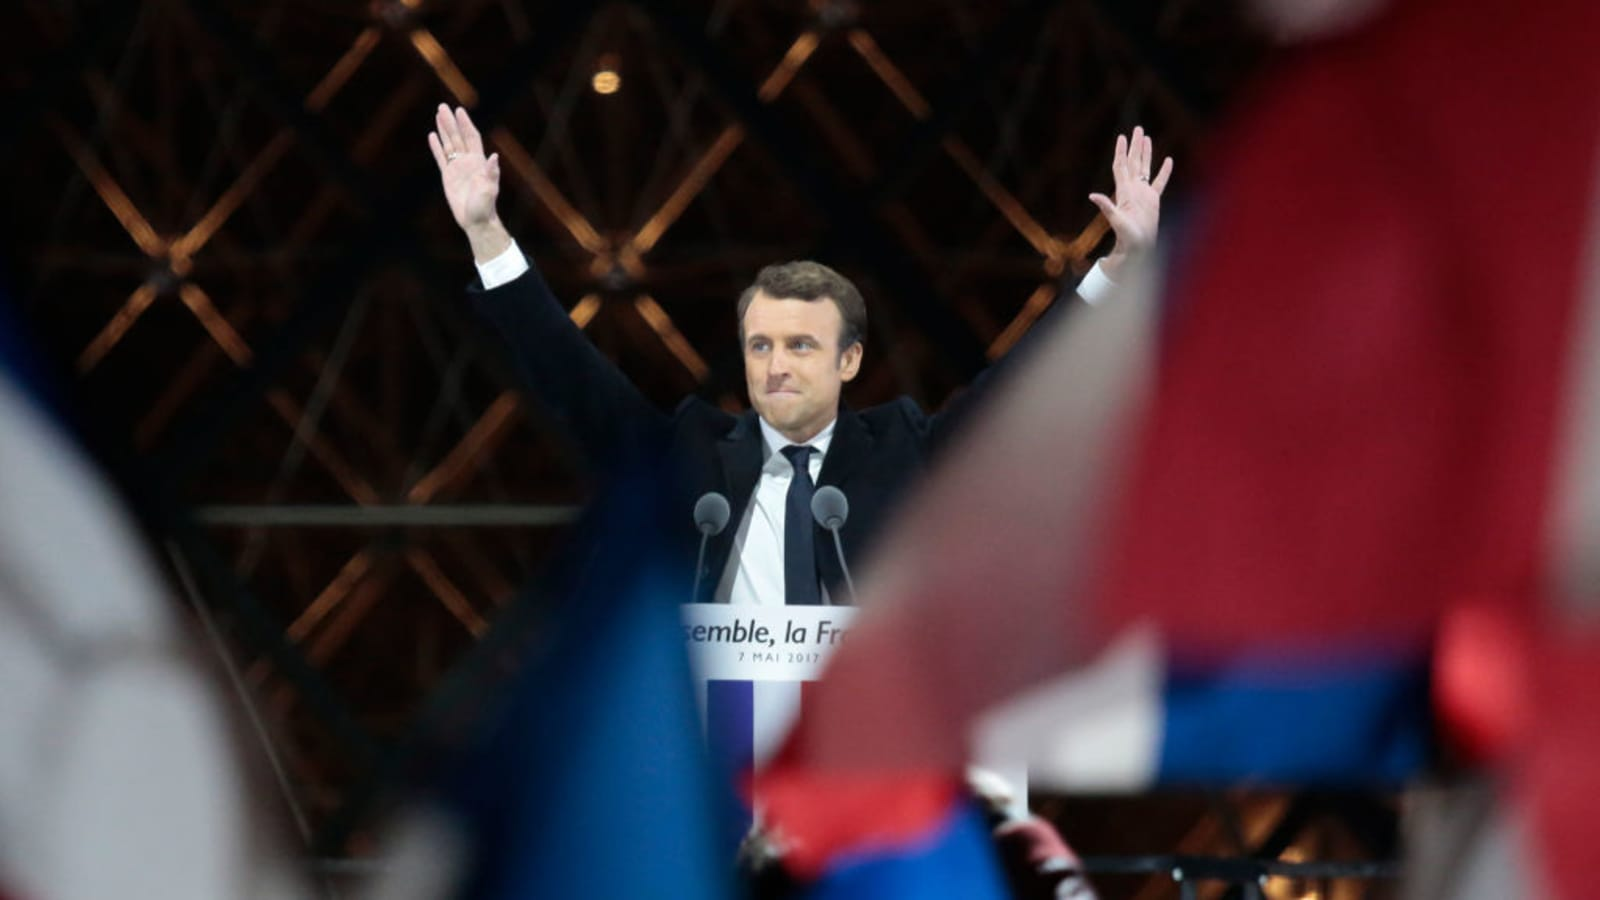 Macron Presents Diverse Cabinet Shows Willingness To Reform